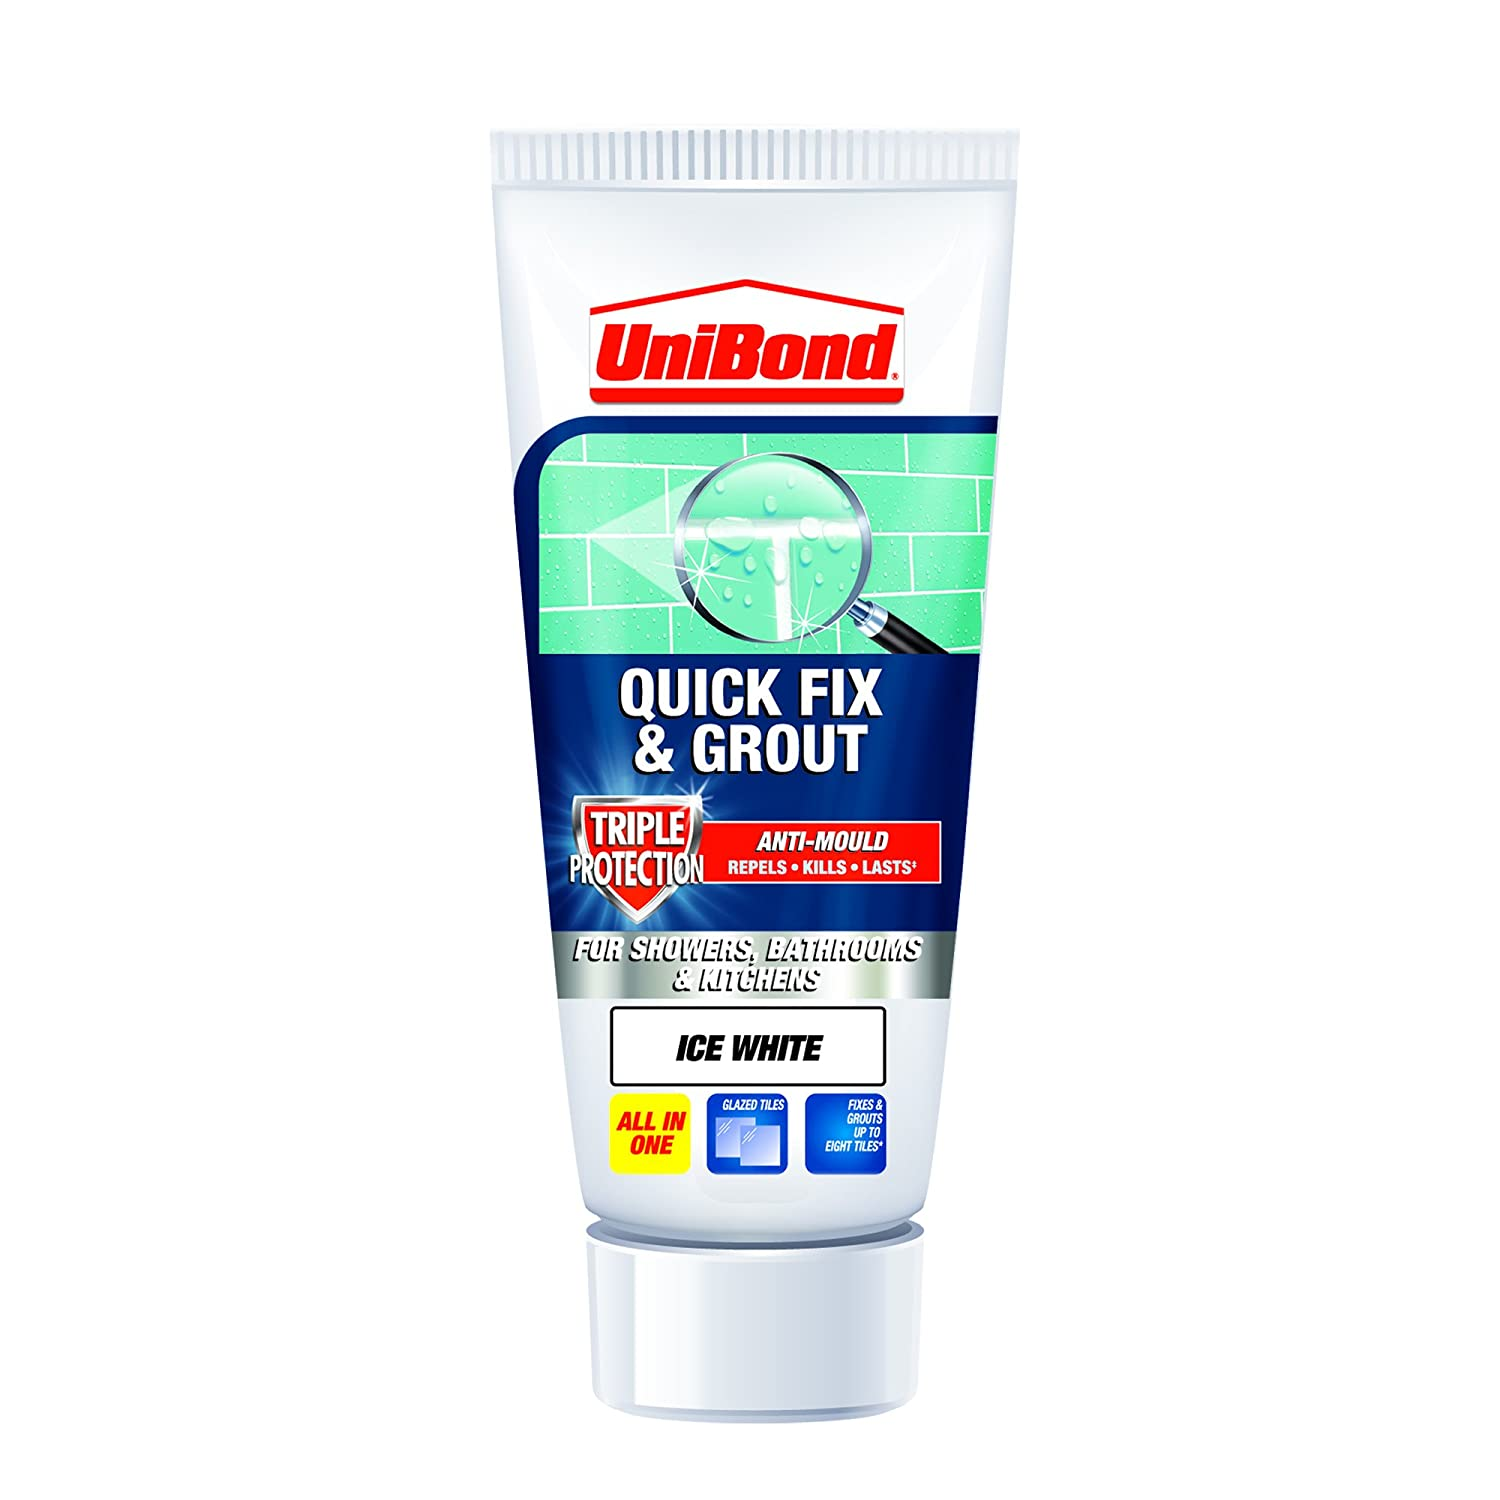 Unibond 1616659 triple protect anti mould fix and grout tube white unibond 1616659 triple protect anti mould fix and grout tube white amazon diy tools dailygadgetfo Gallery